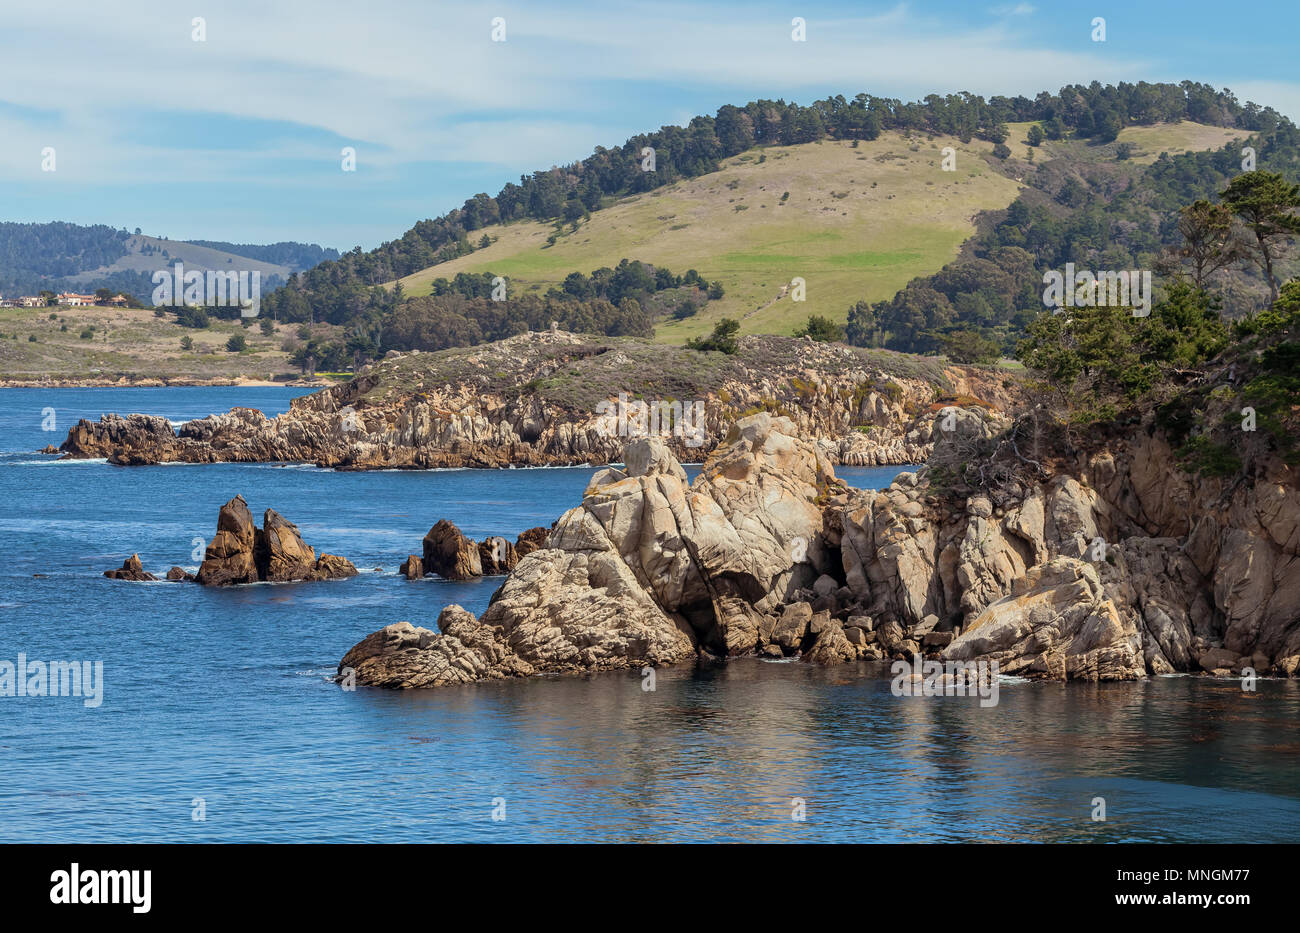 View of the Northern California coastline from Cypress Cove in Point Lobos State Natural Reserve, Camel, United States. Stock Photo